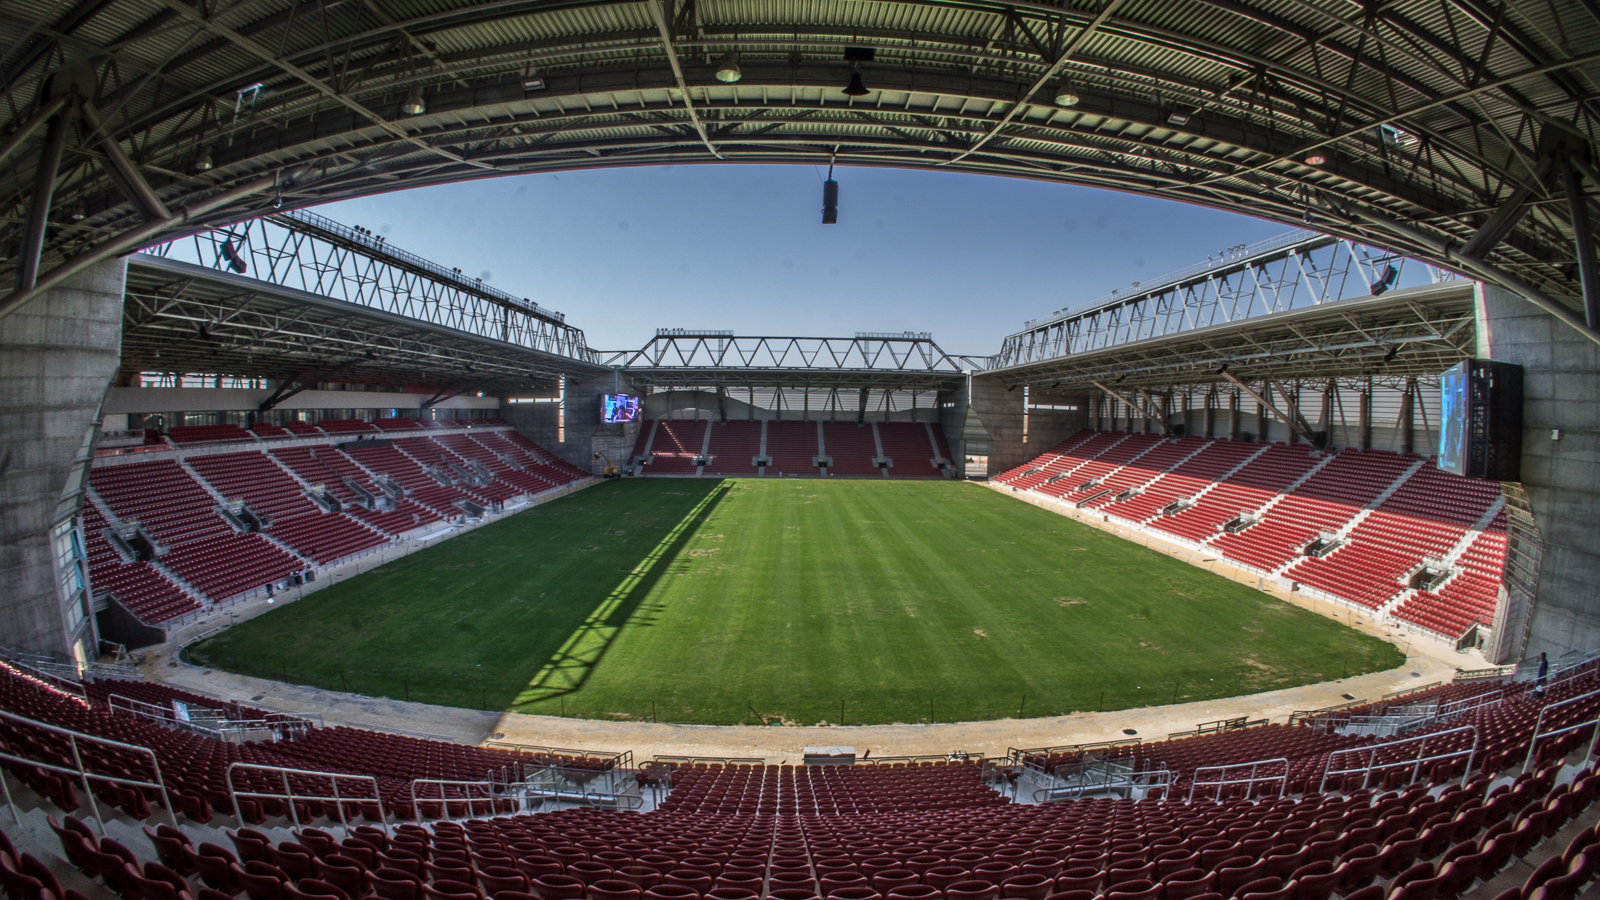 H. Beer Sheva VS Lugano ( BETTING TIPS, Match Preview & Expert Analysis )